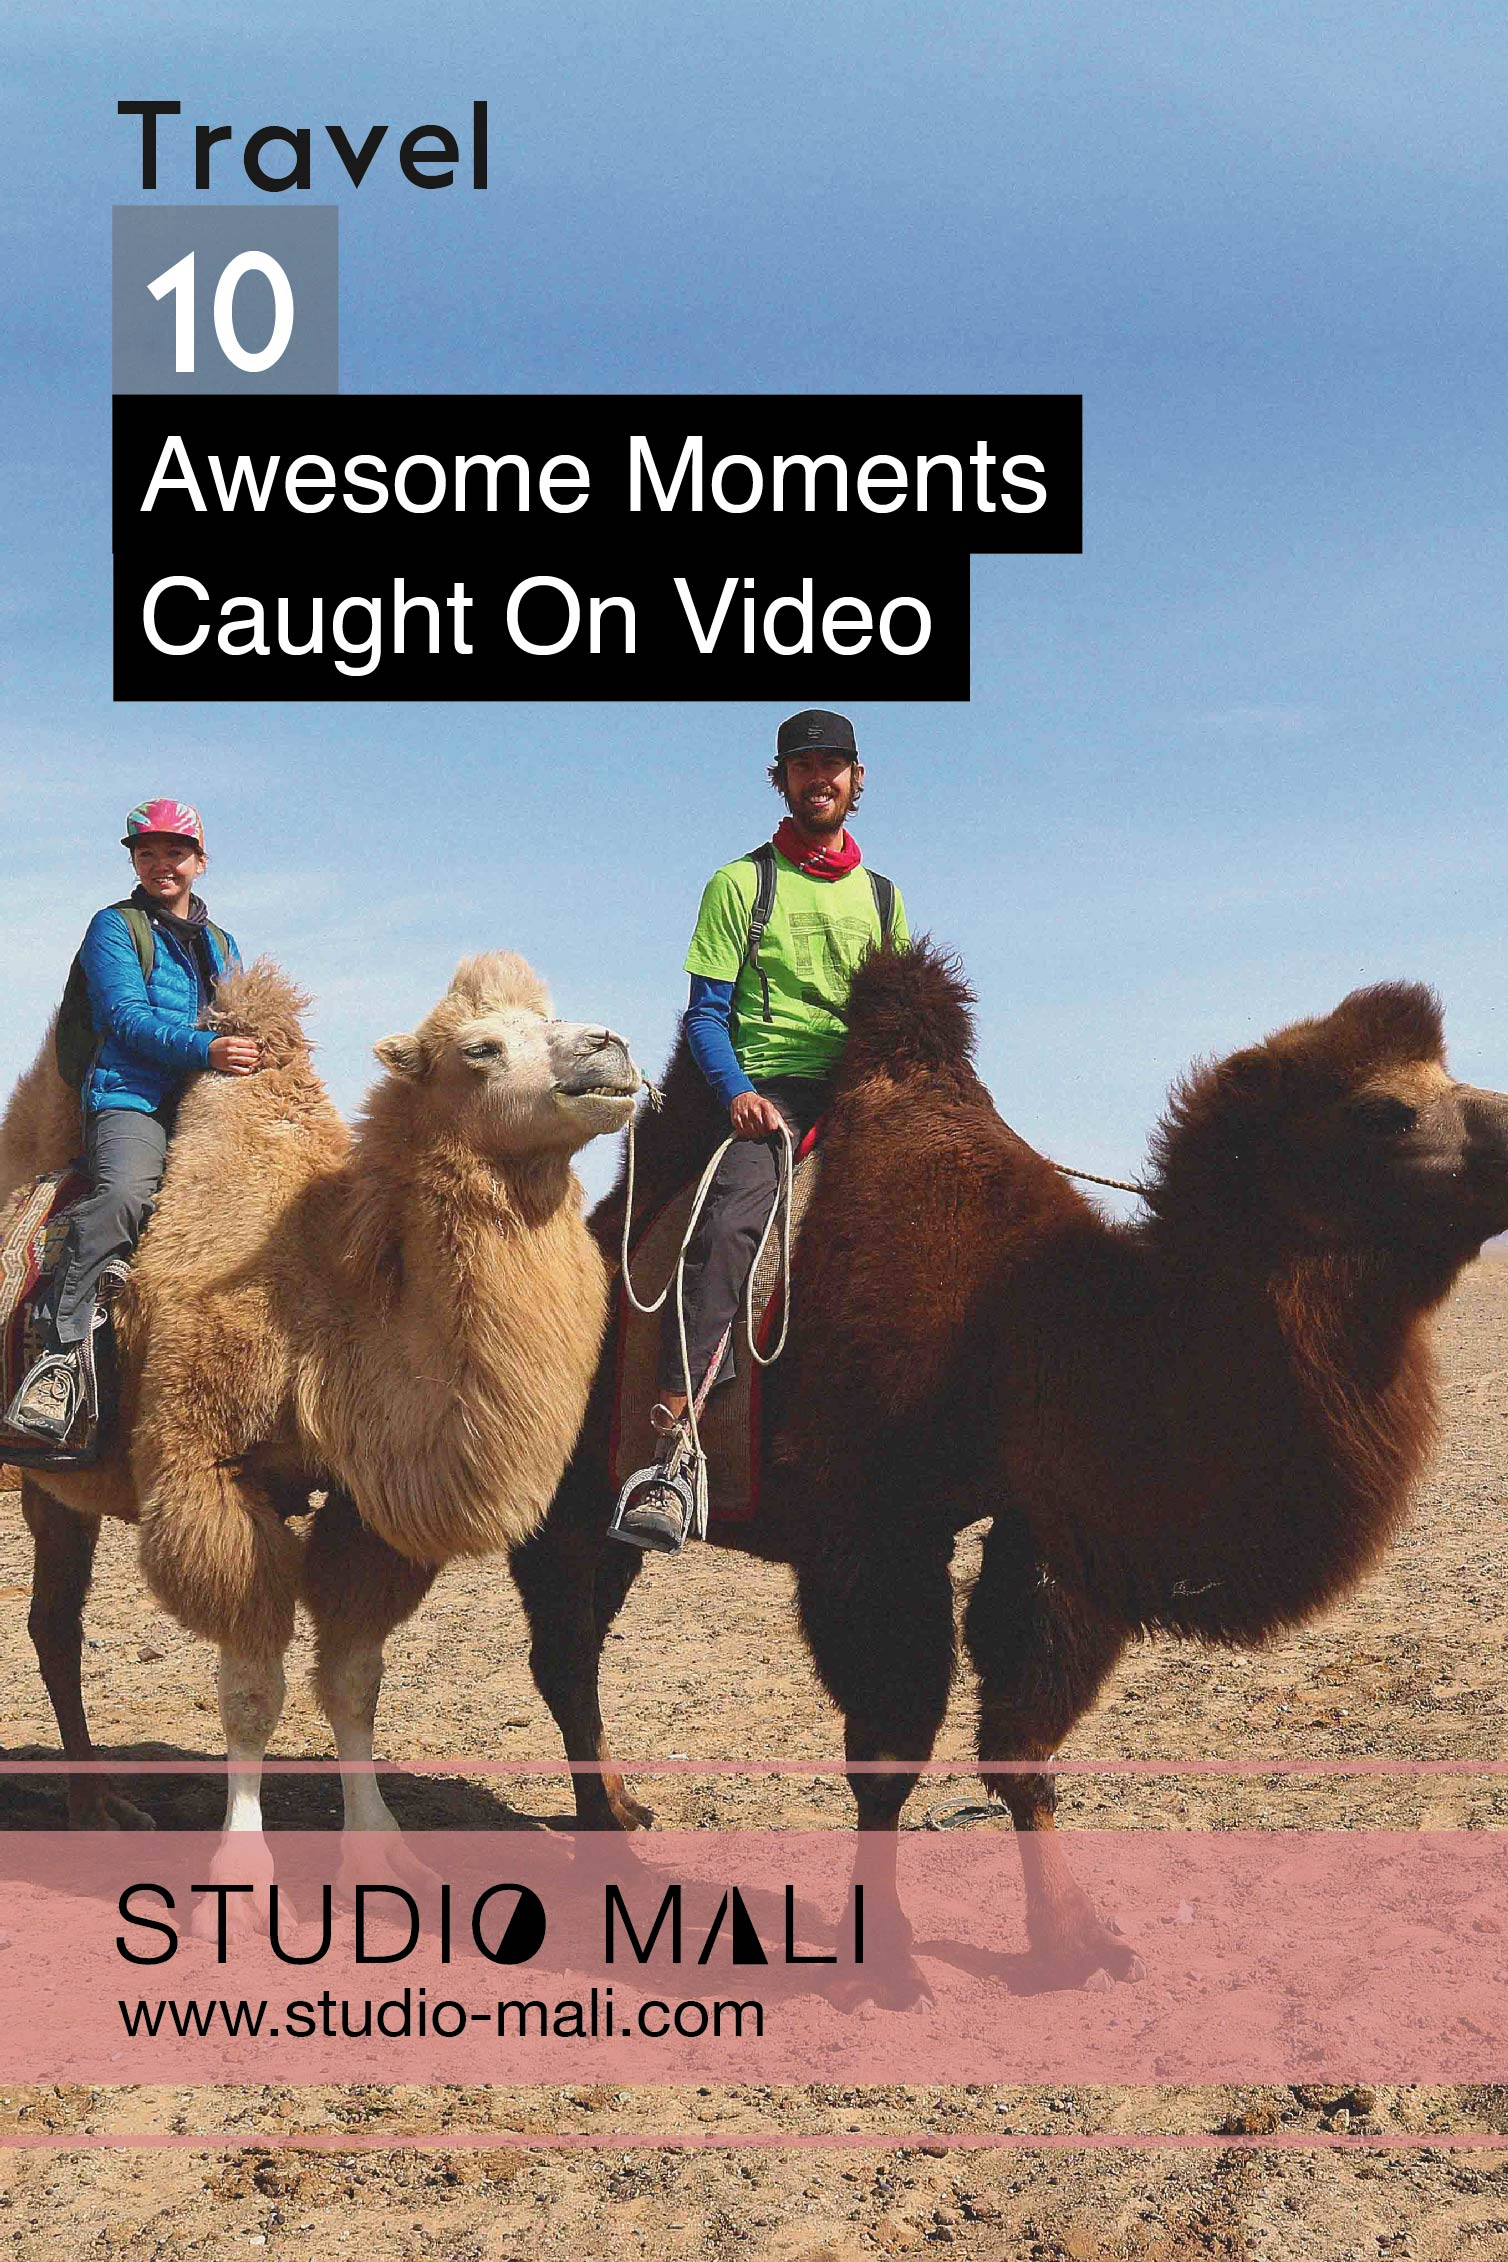 10 Awesome Moments Caught On Camera, by Studio Mali